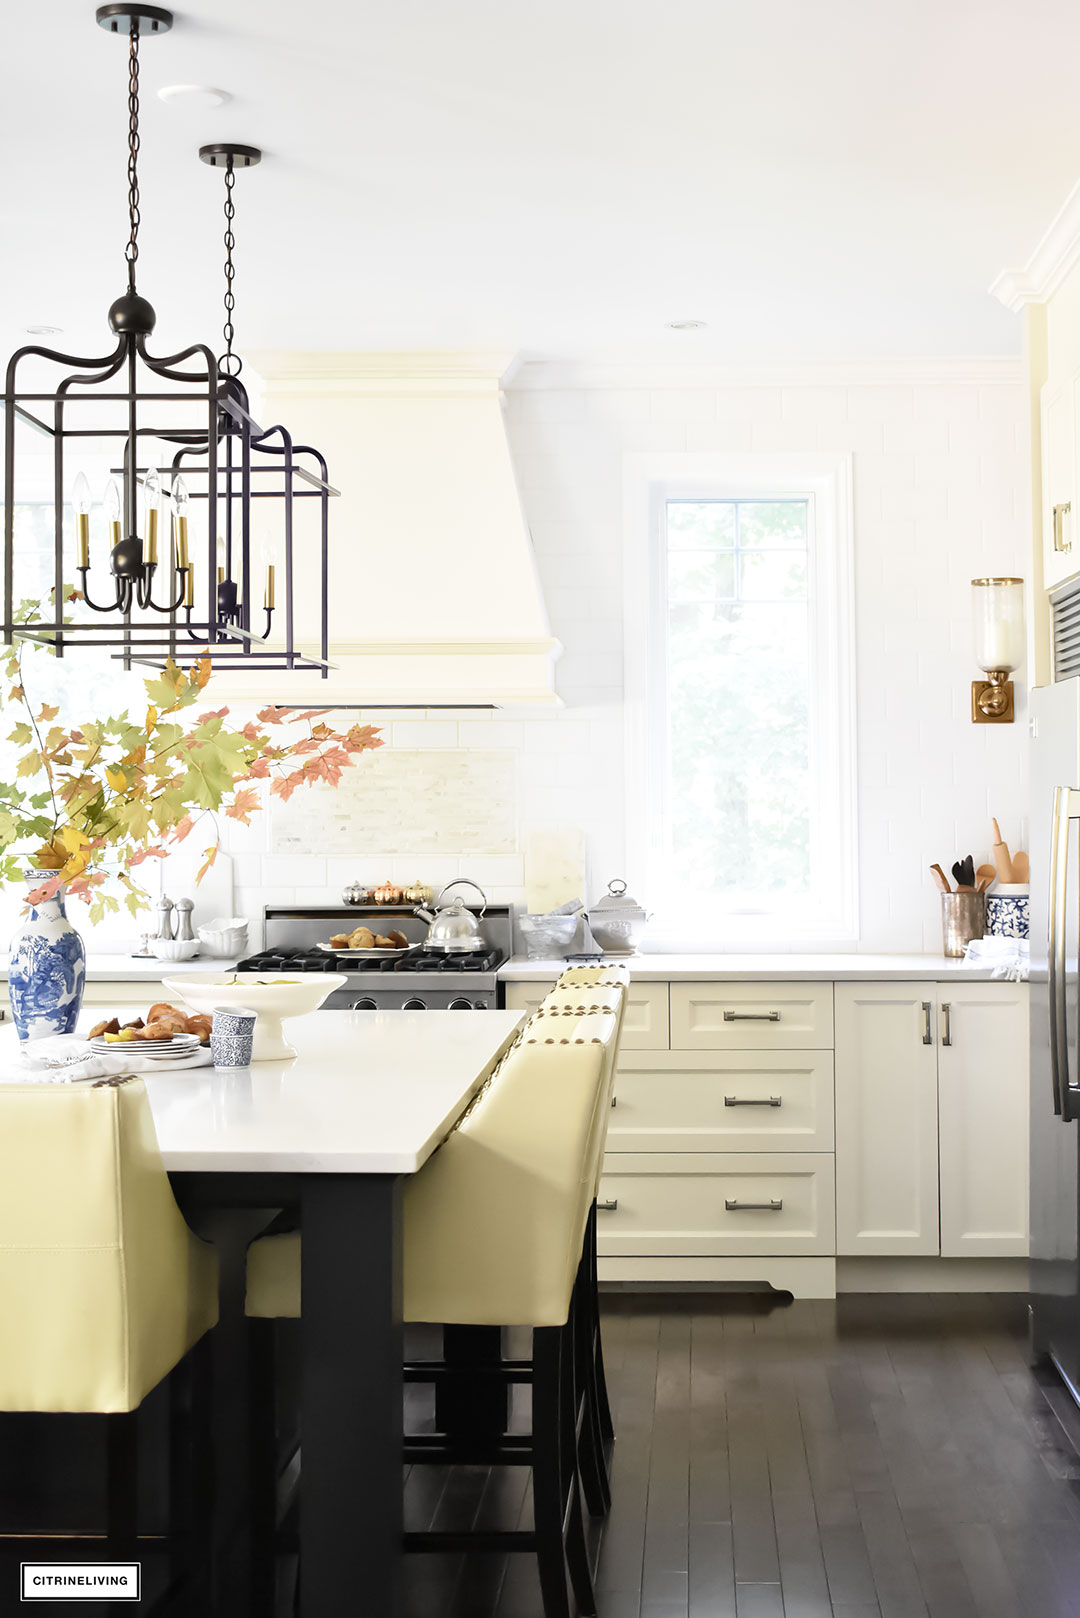 Fall Home Tour - casual elegant black and white kitchen with large black island and lantern style pendant lighting. Brass wall sconces.